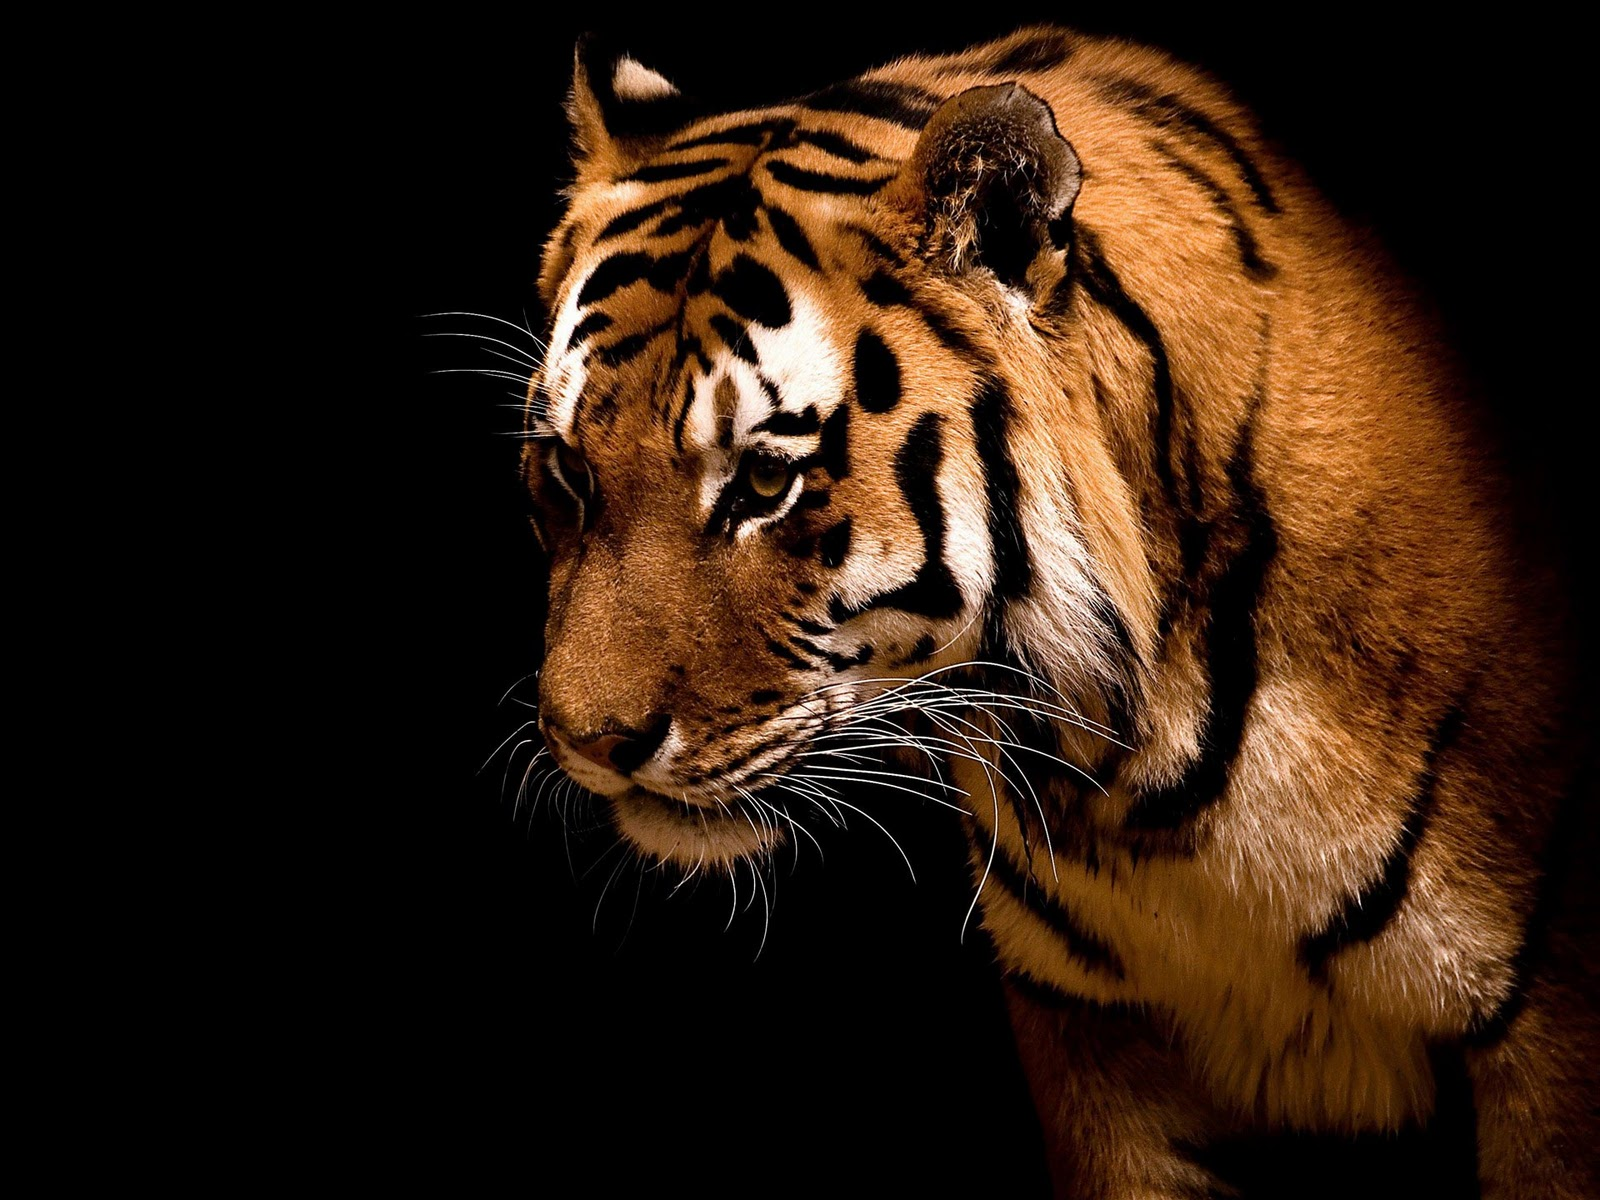 http://4.bp.blogspot.com/-sqxFQB-CjlM/Tt8imMJq6vI/AAAAAAAAAkE/uPkA7Mljb6U/s1600/Wallpapers_Windows_7_-_Tiger%252C_Big_cat.jpg